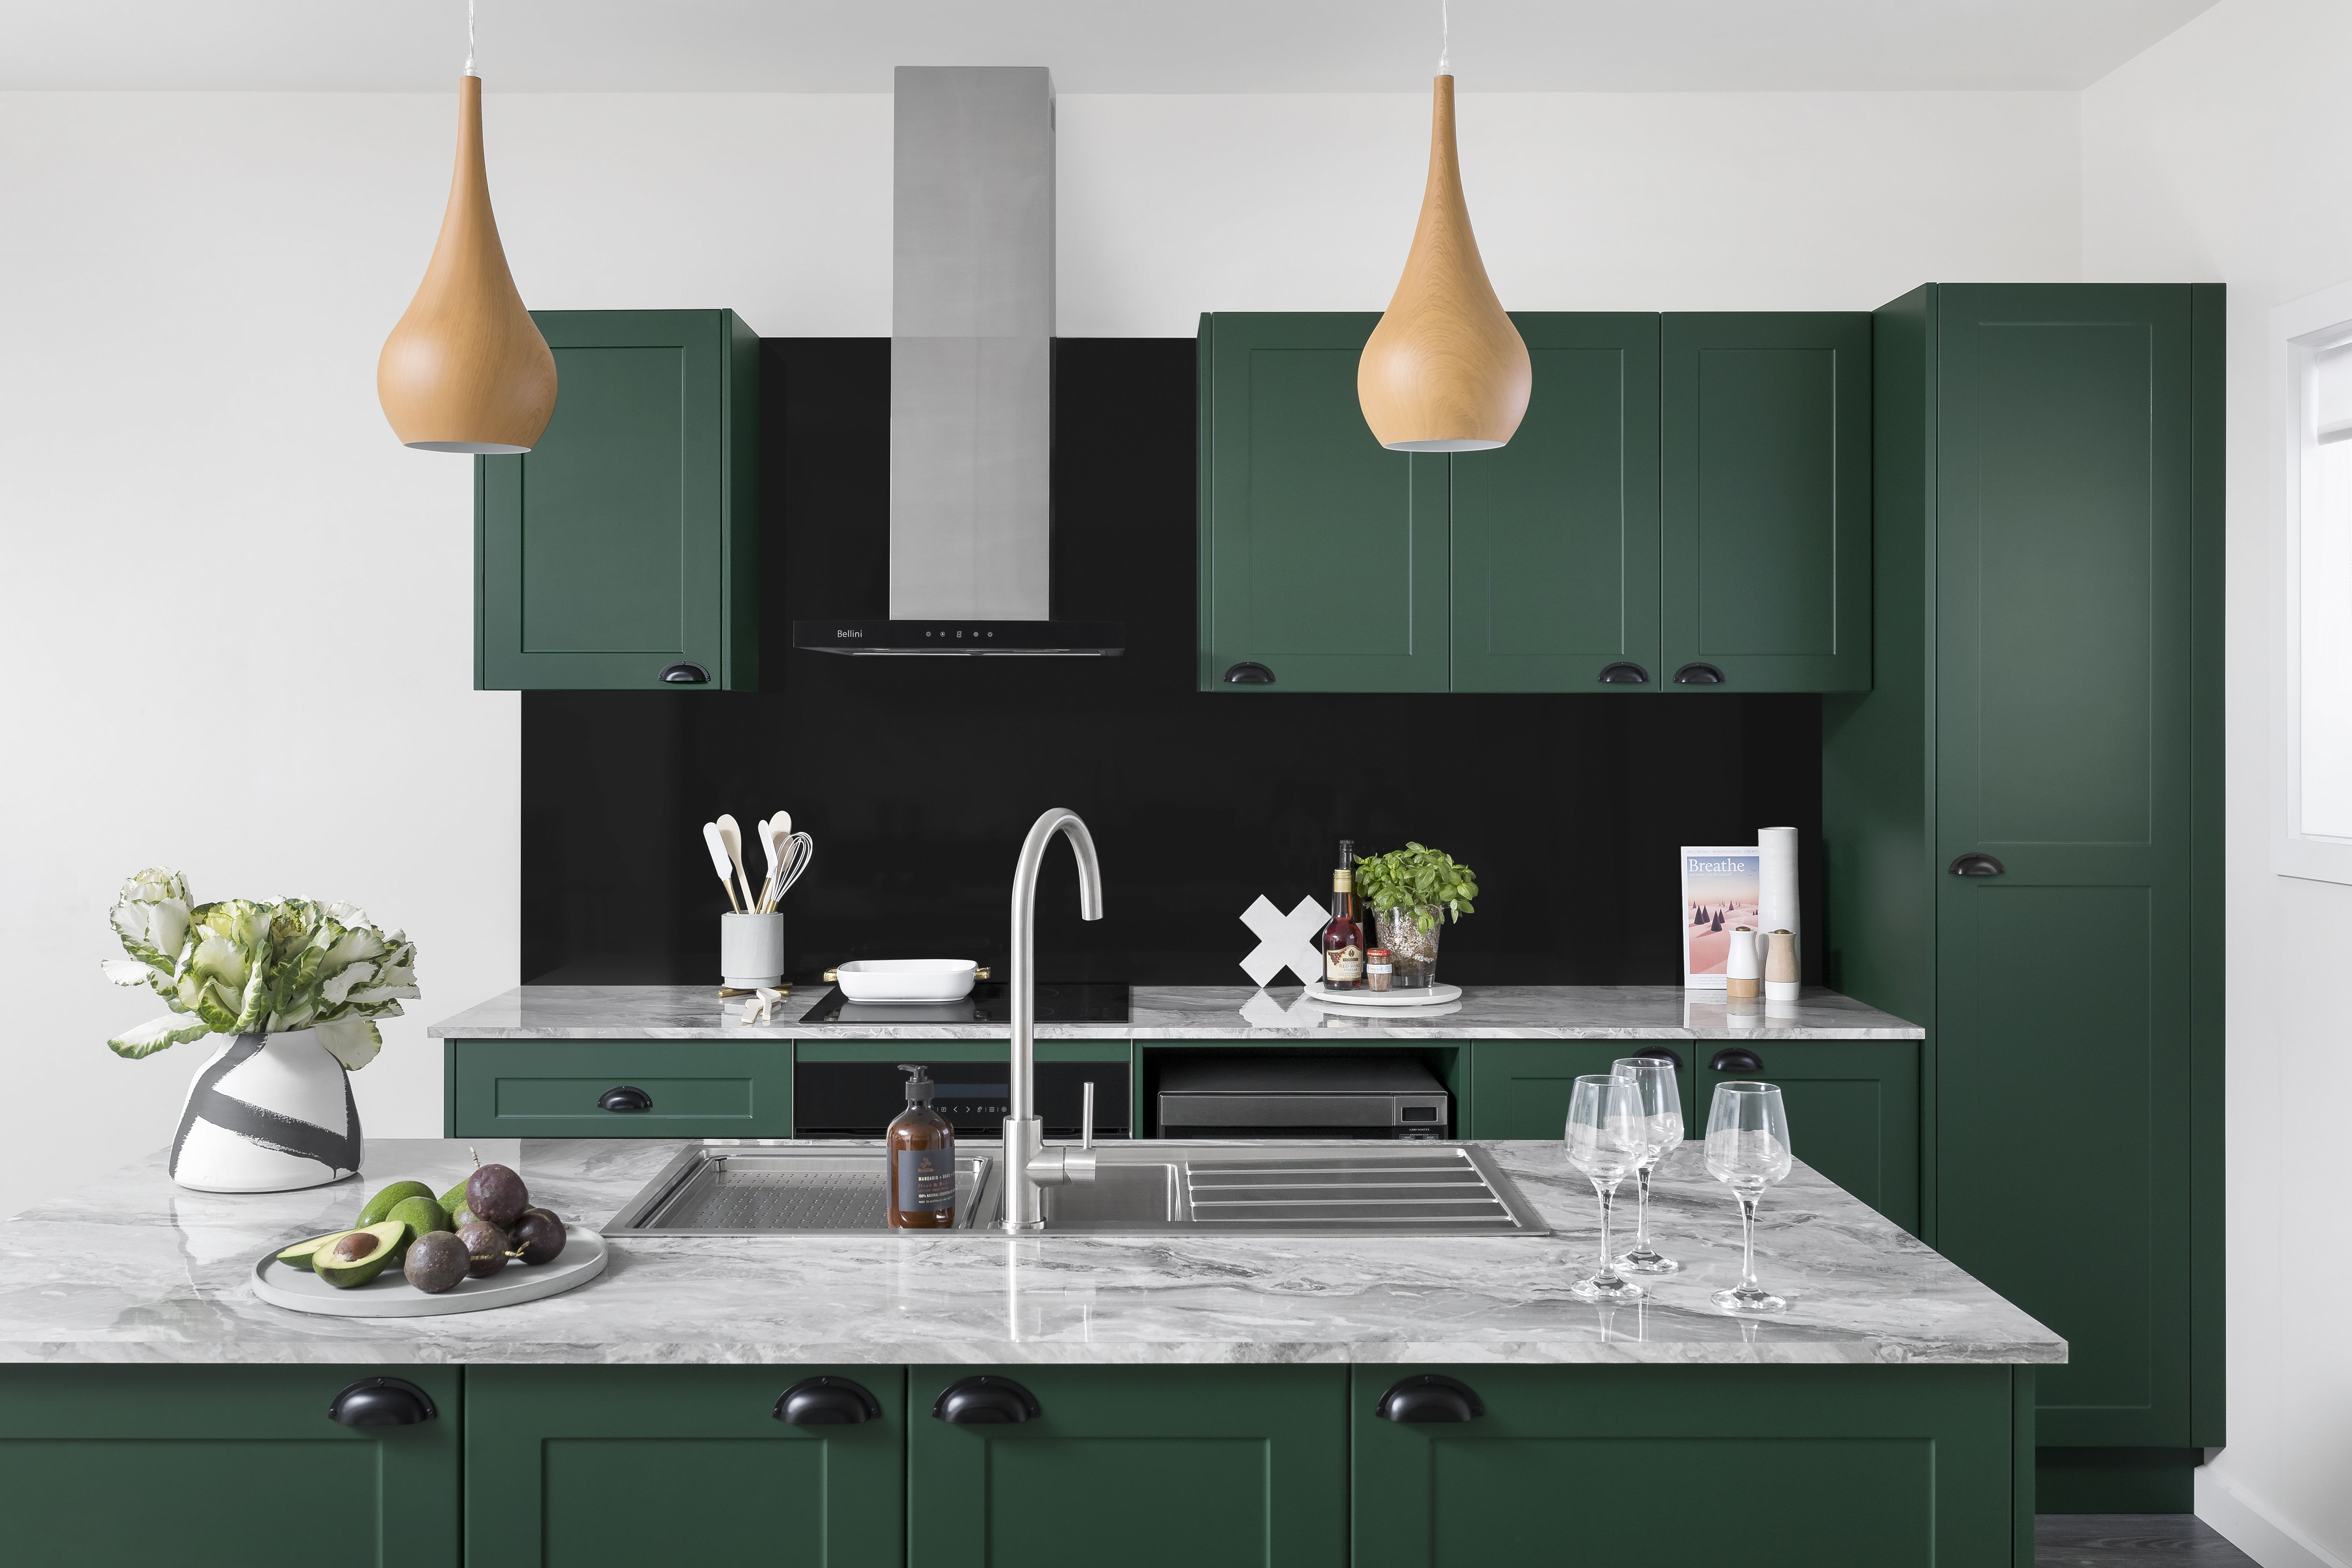 kaboodle kitchen with green cabinetry and cup handles bunnings kitchen with images on kaboodle kitchen design id=24318